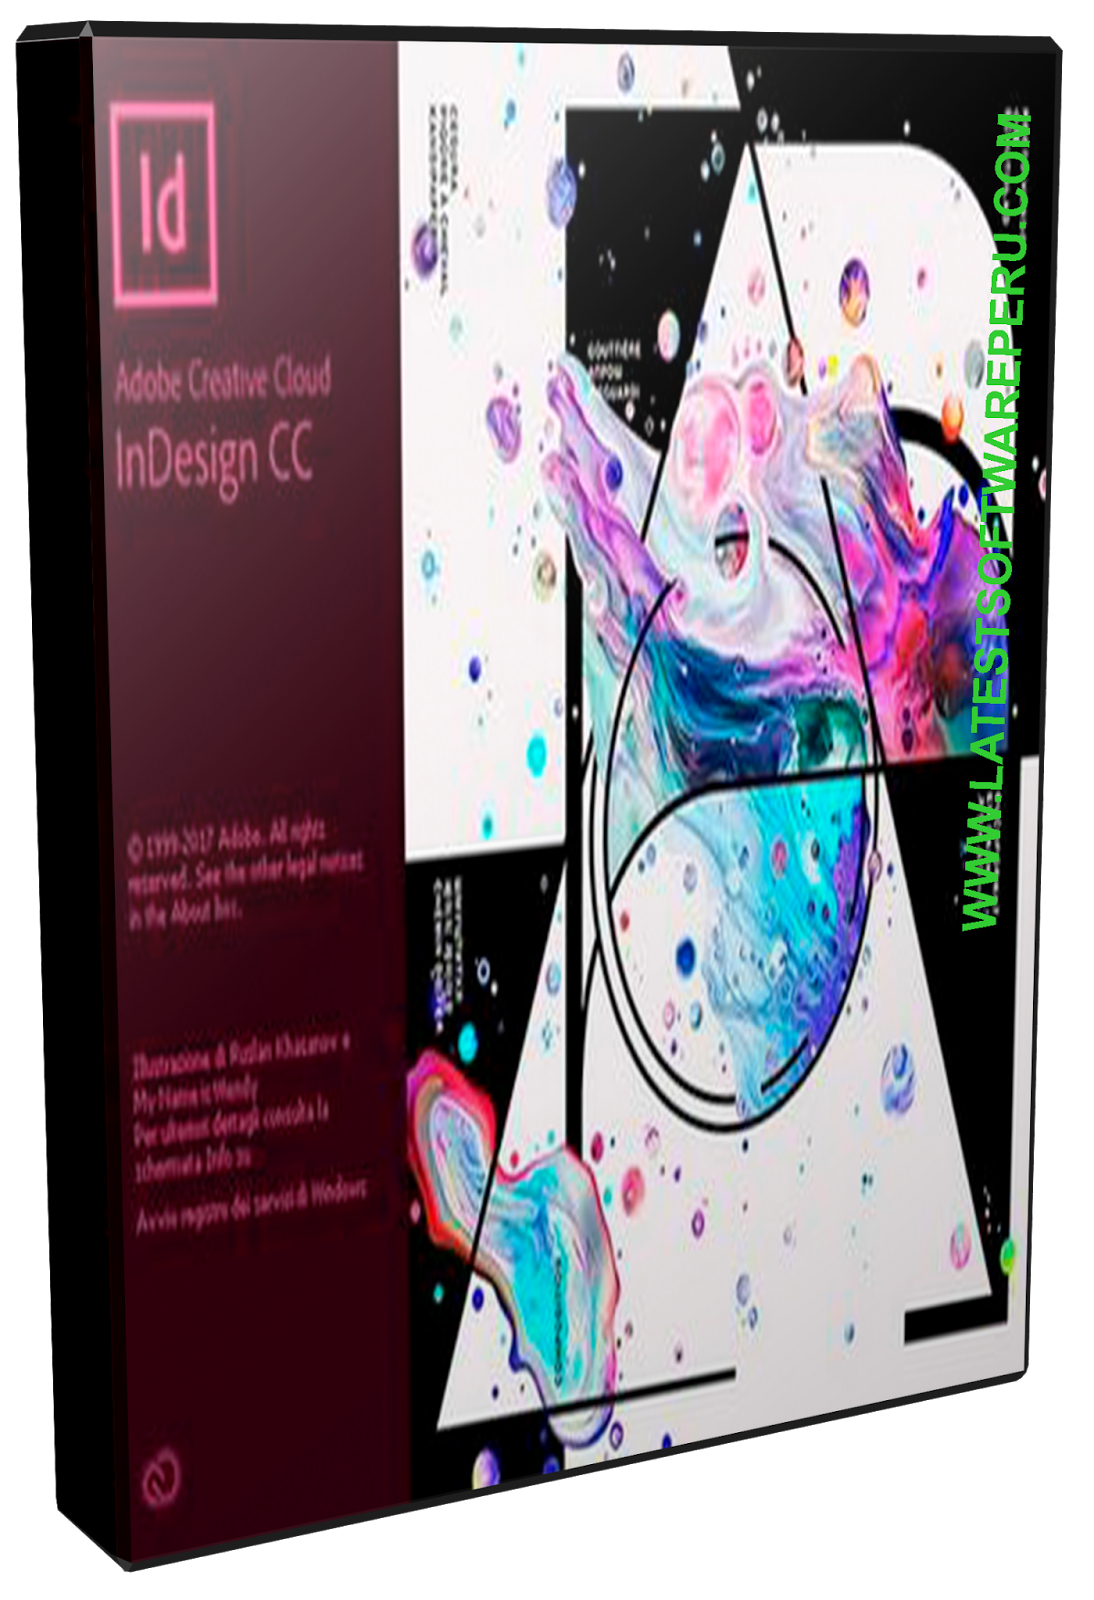 ADOBE INDESIGN CC 2018 V13.0.0.125 (Mac OS X), MULTILENGUAJE ...